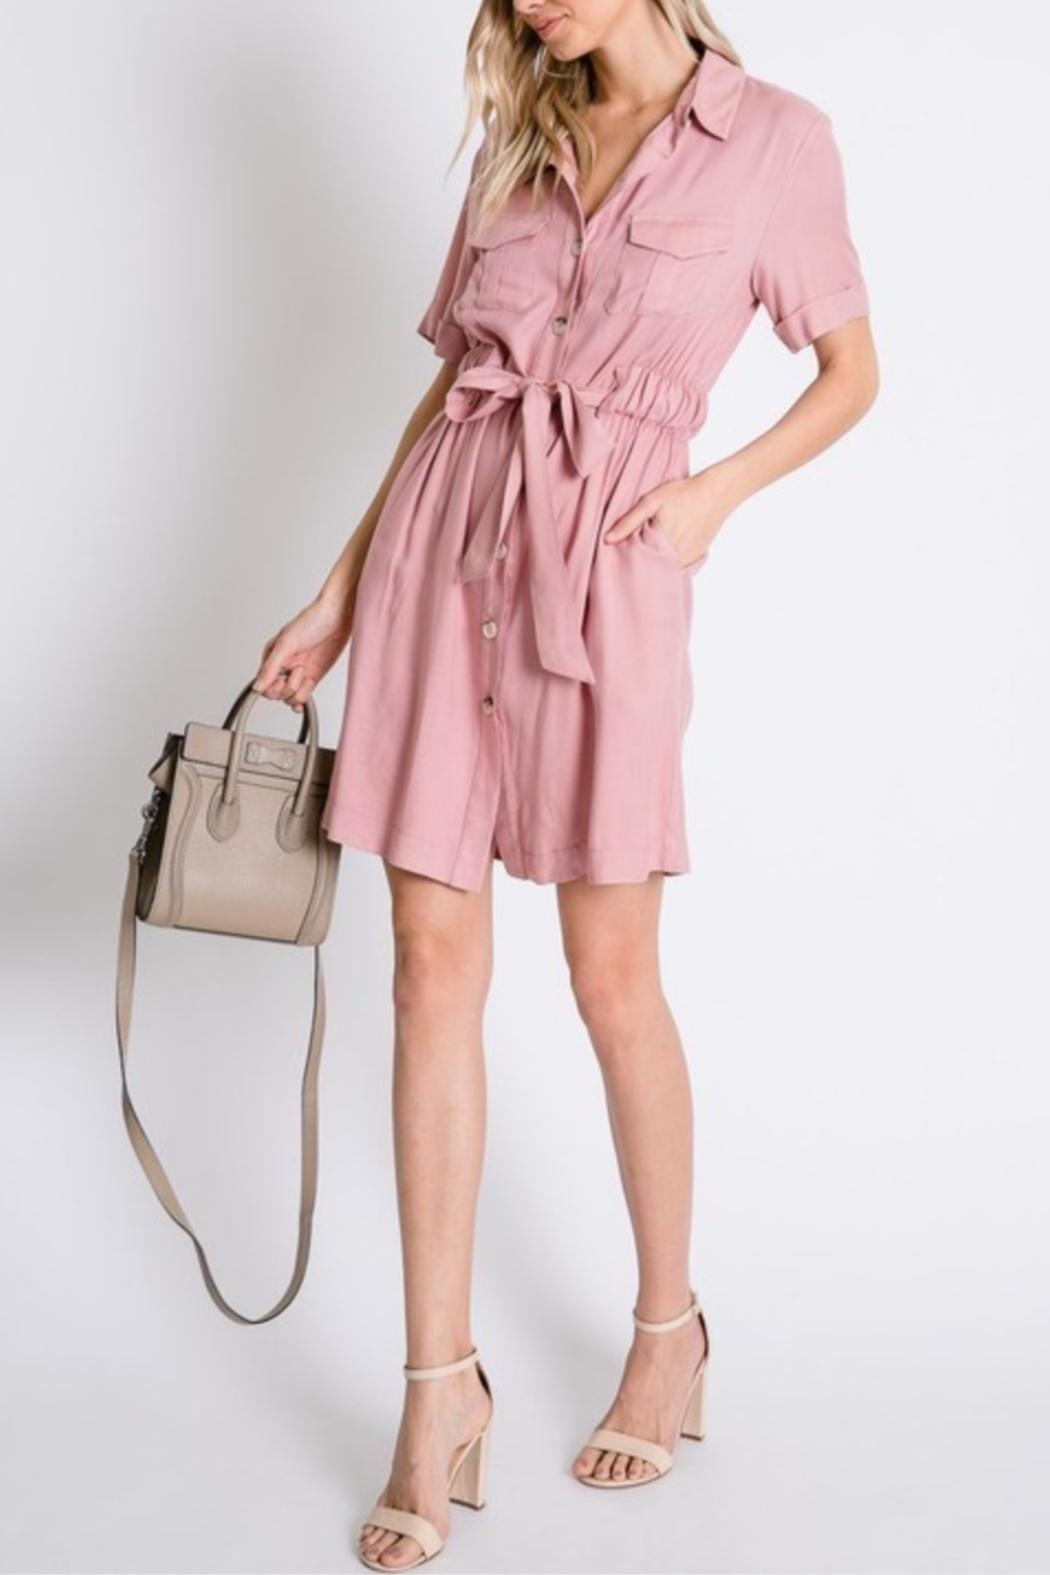 Davi & Dani Button Down Shirt-Dress - Side Cropped Image